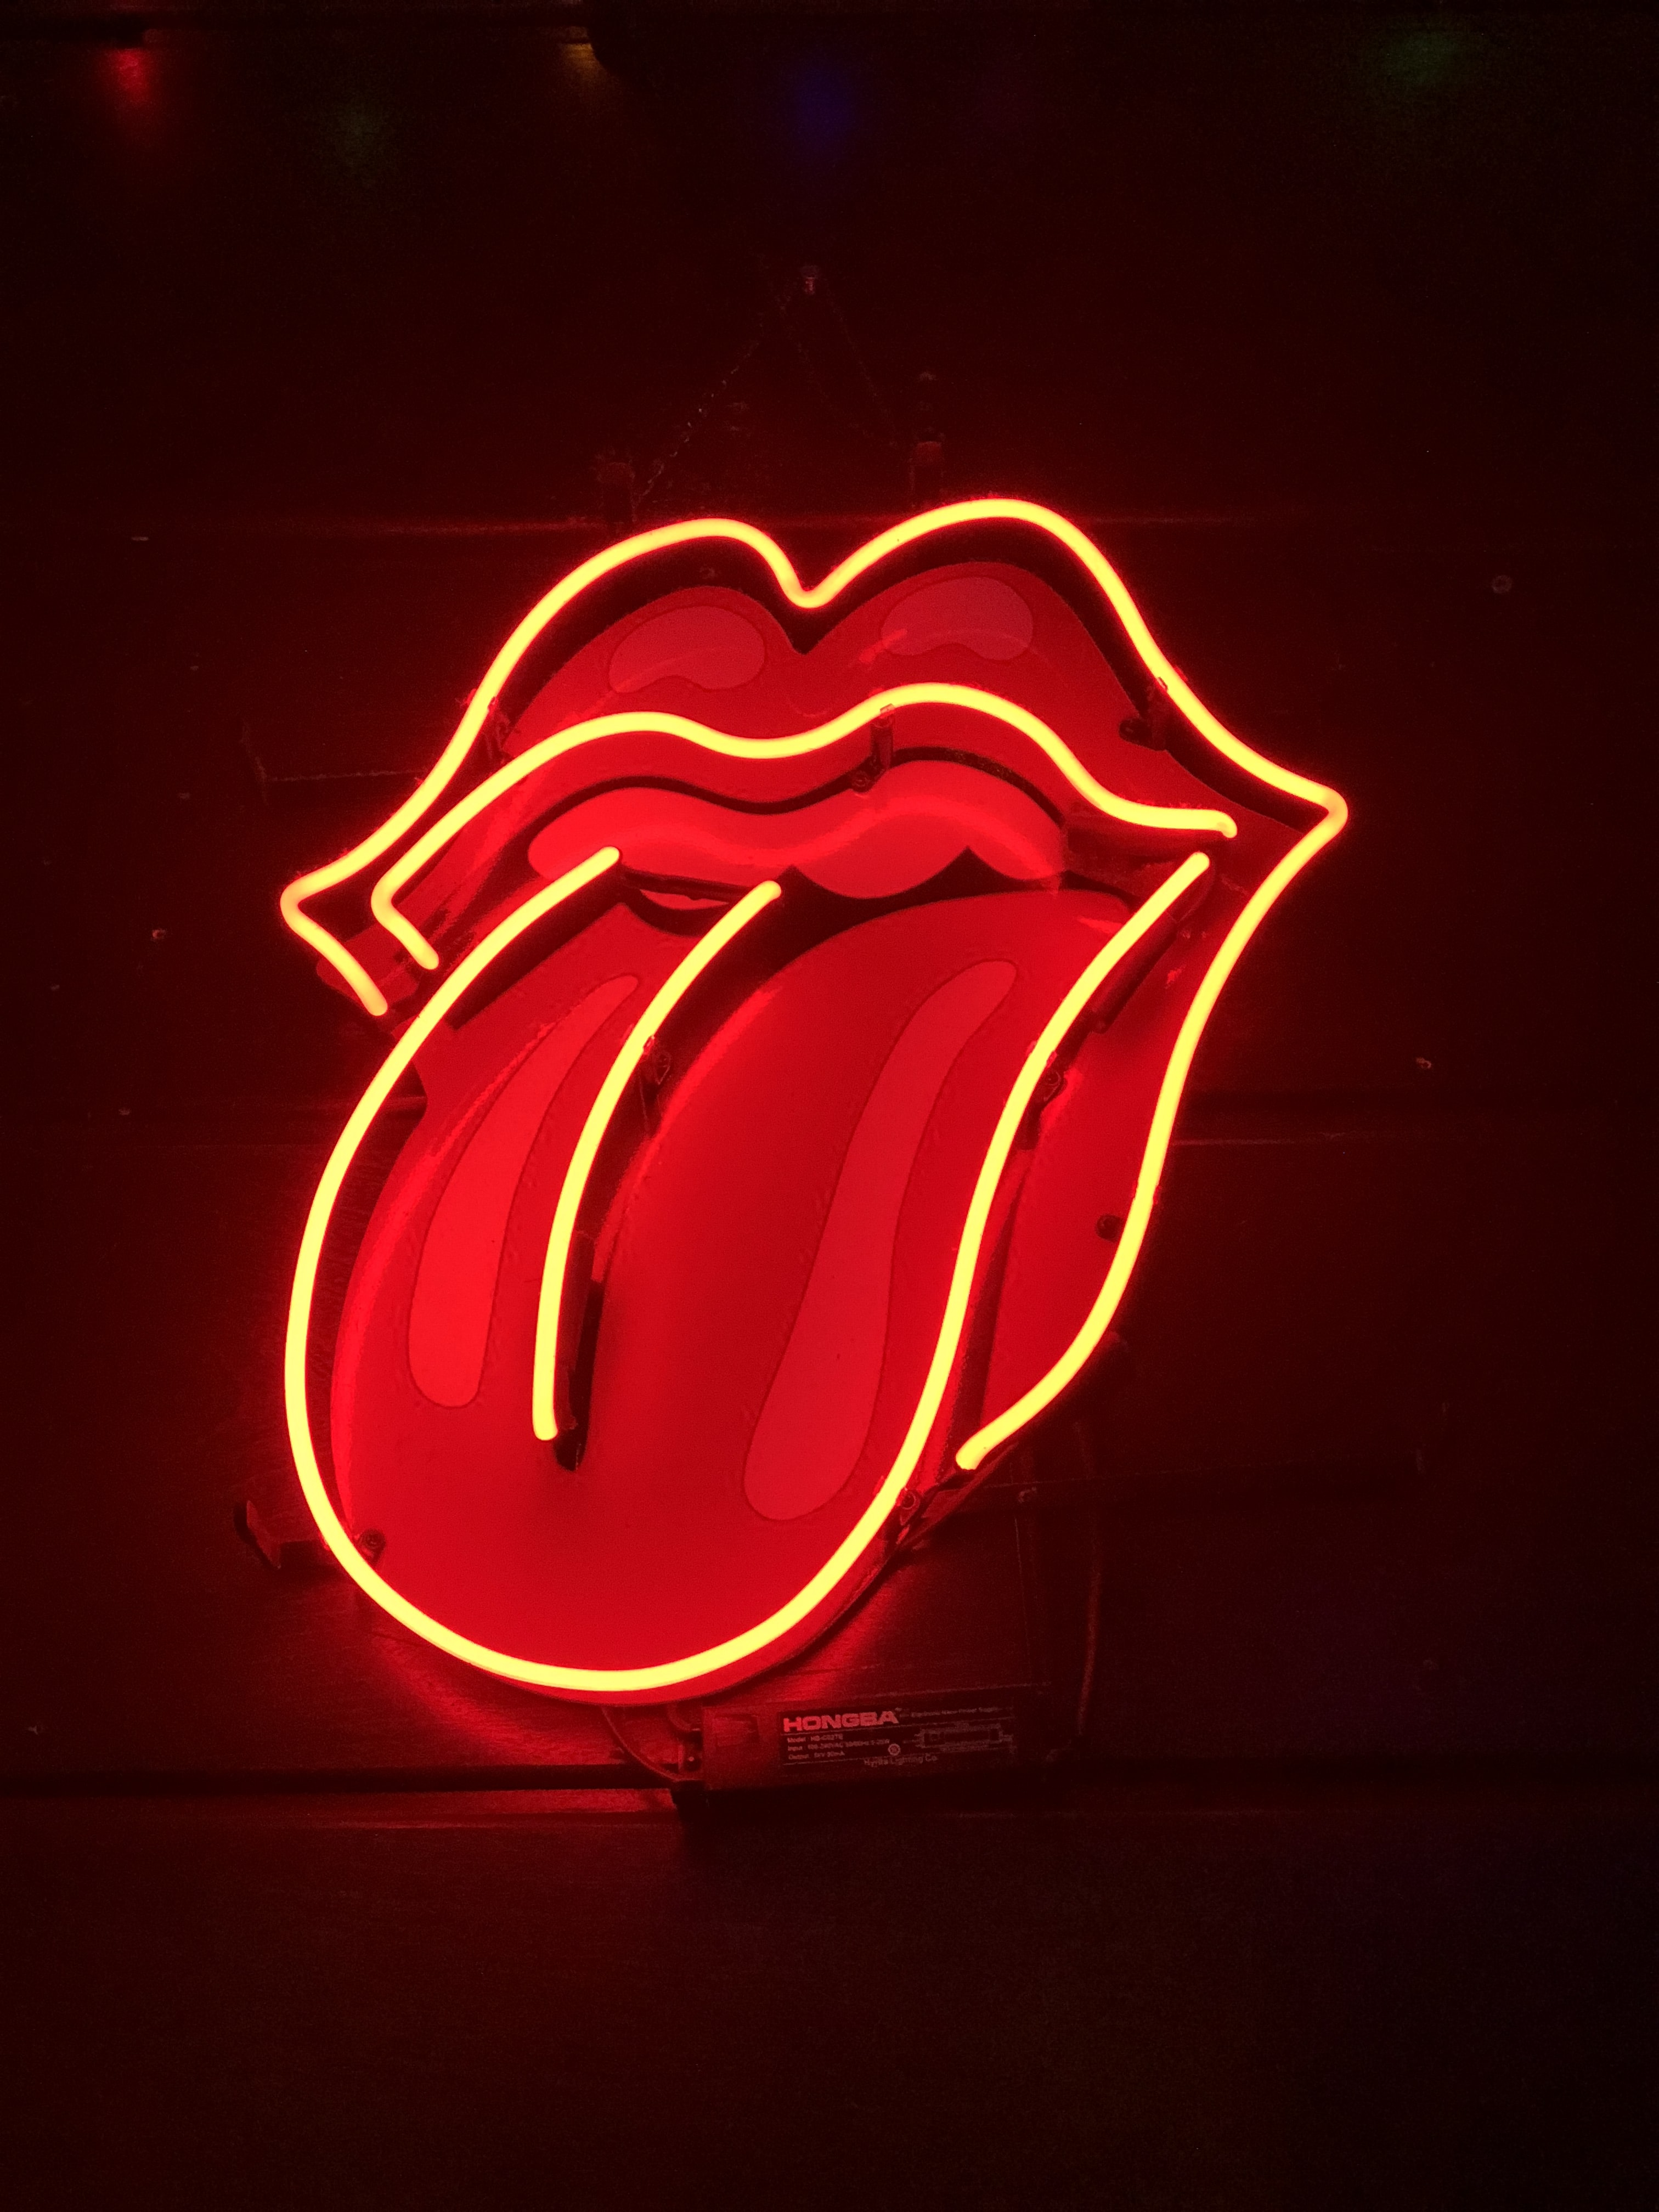 red tongue out neon light signage turned on